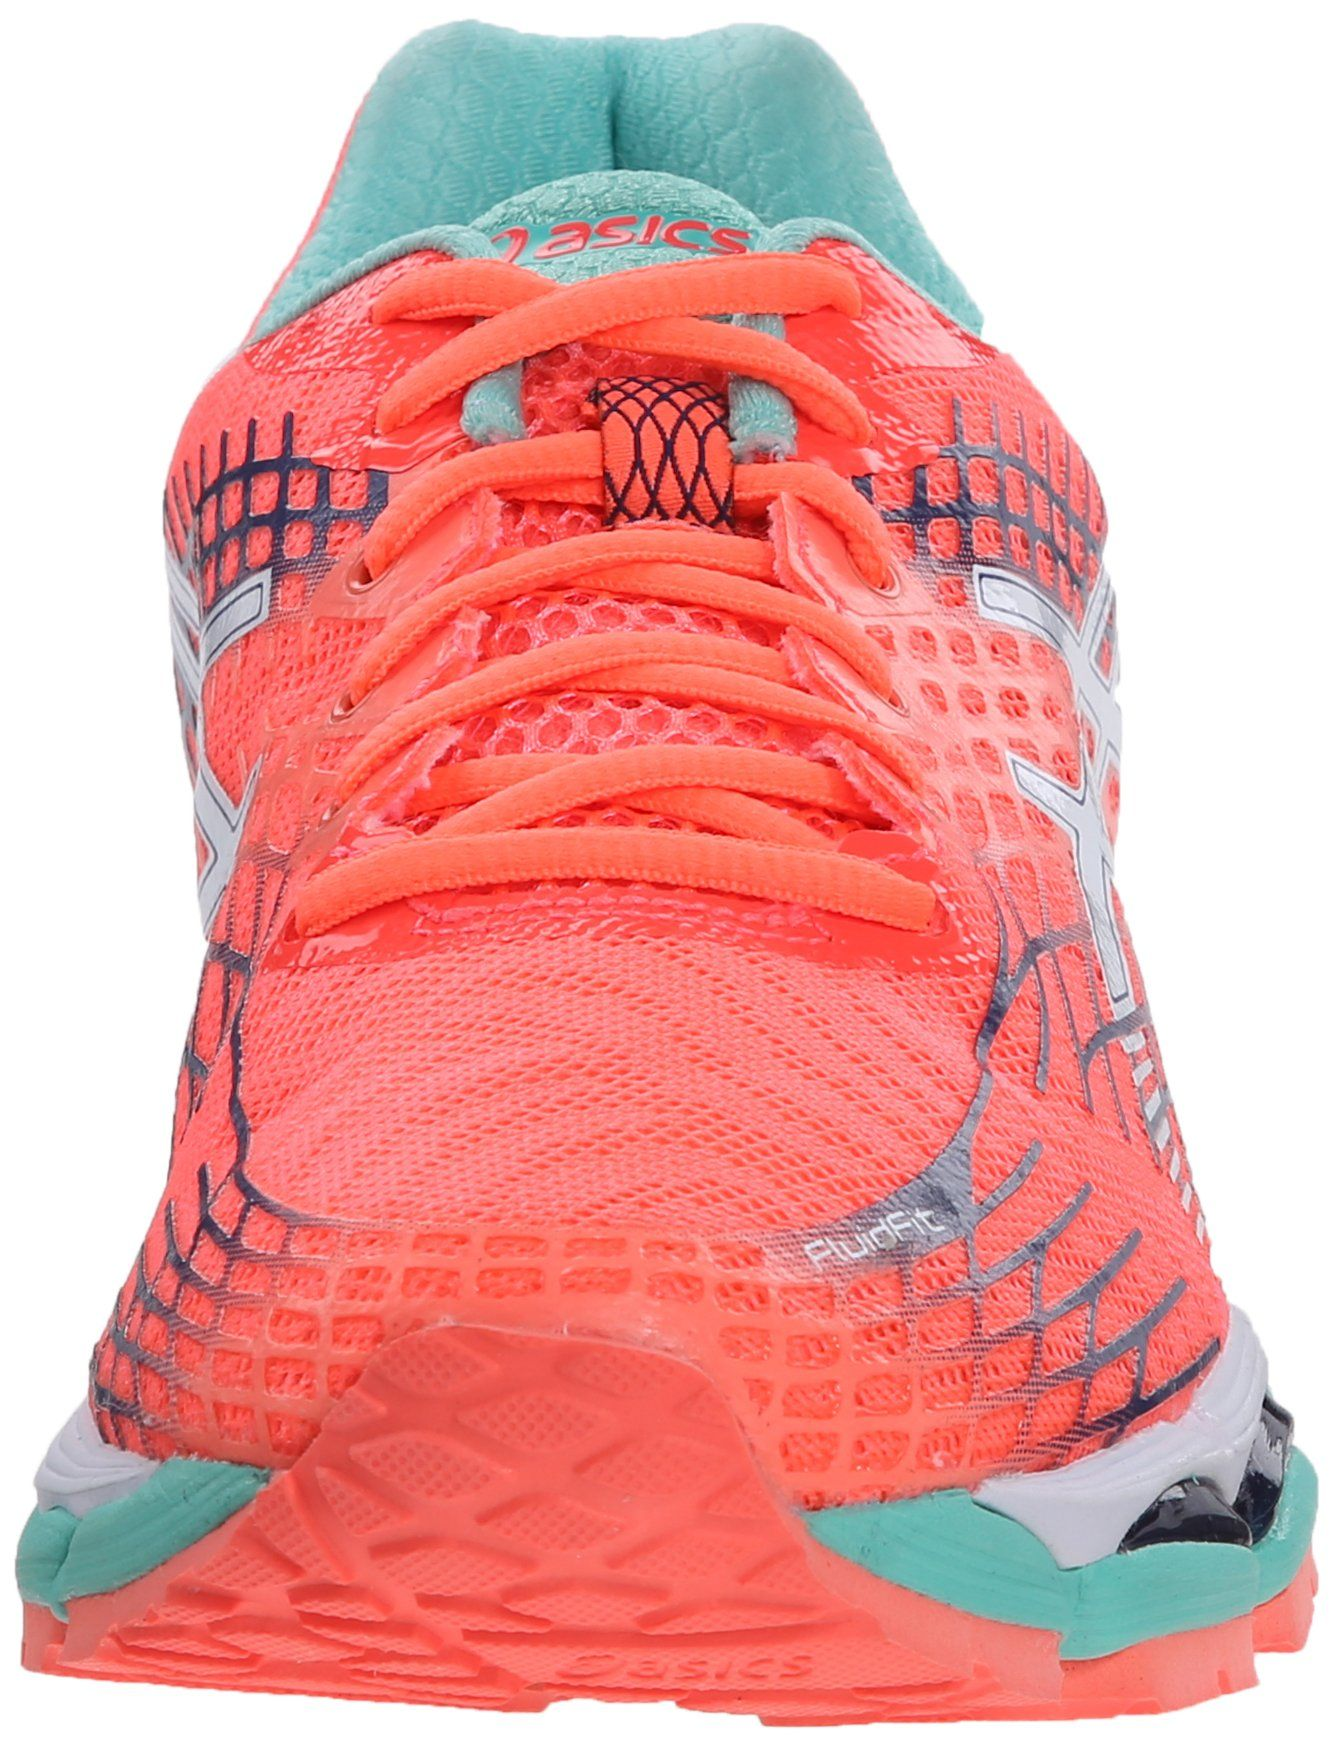 654bdabe5ded7 ASICS Women's GEL-Nimbus 17 Running Shoe | Amazon.com … | My Style ...